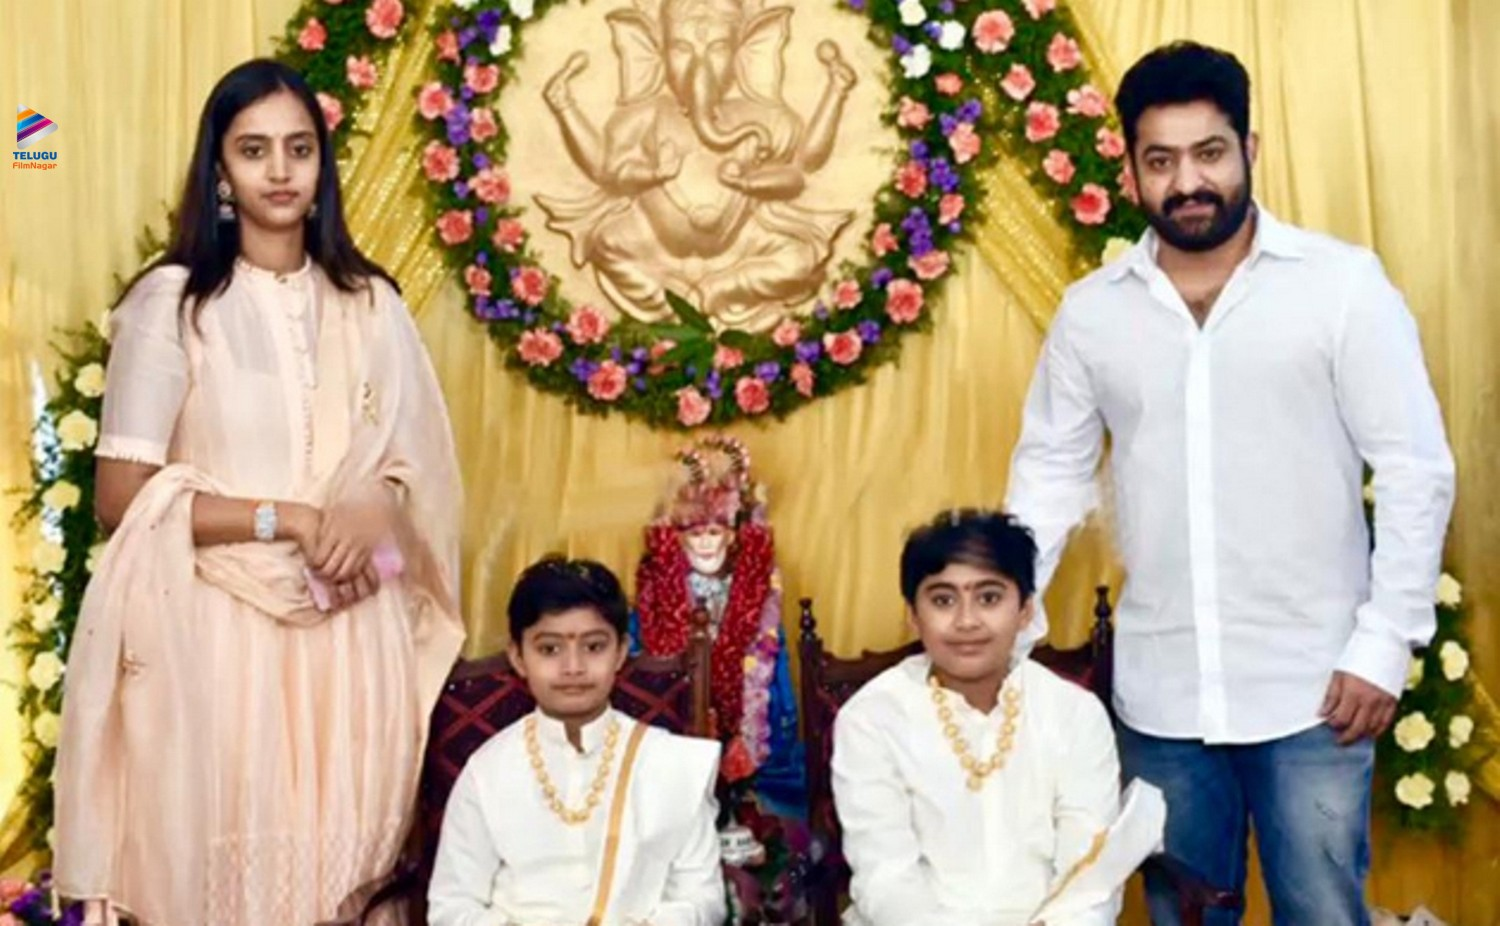 53. Jr Ntr Rare Pic His Wife At Family Function